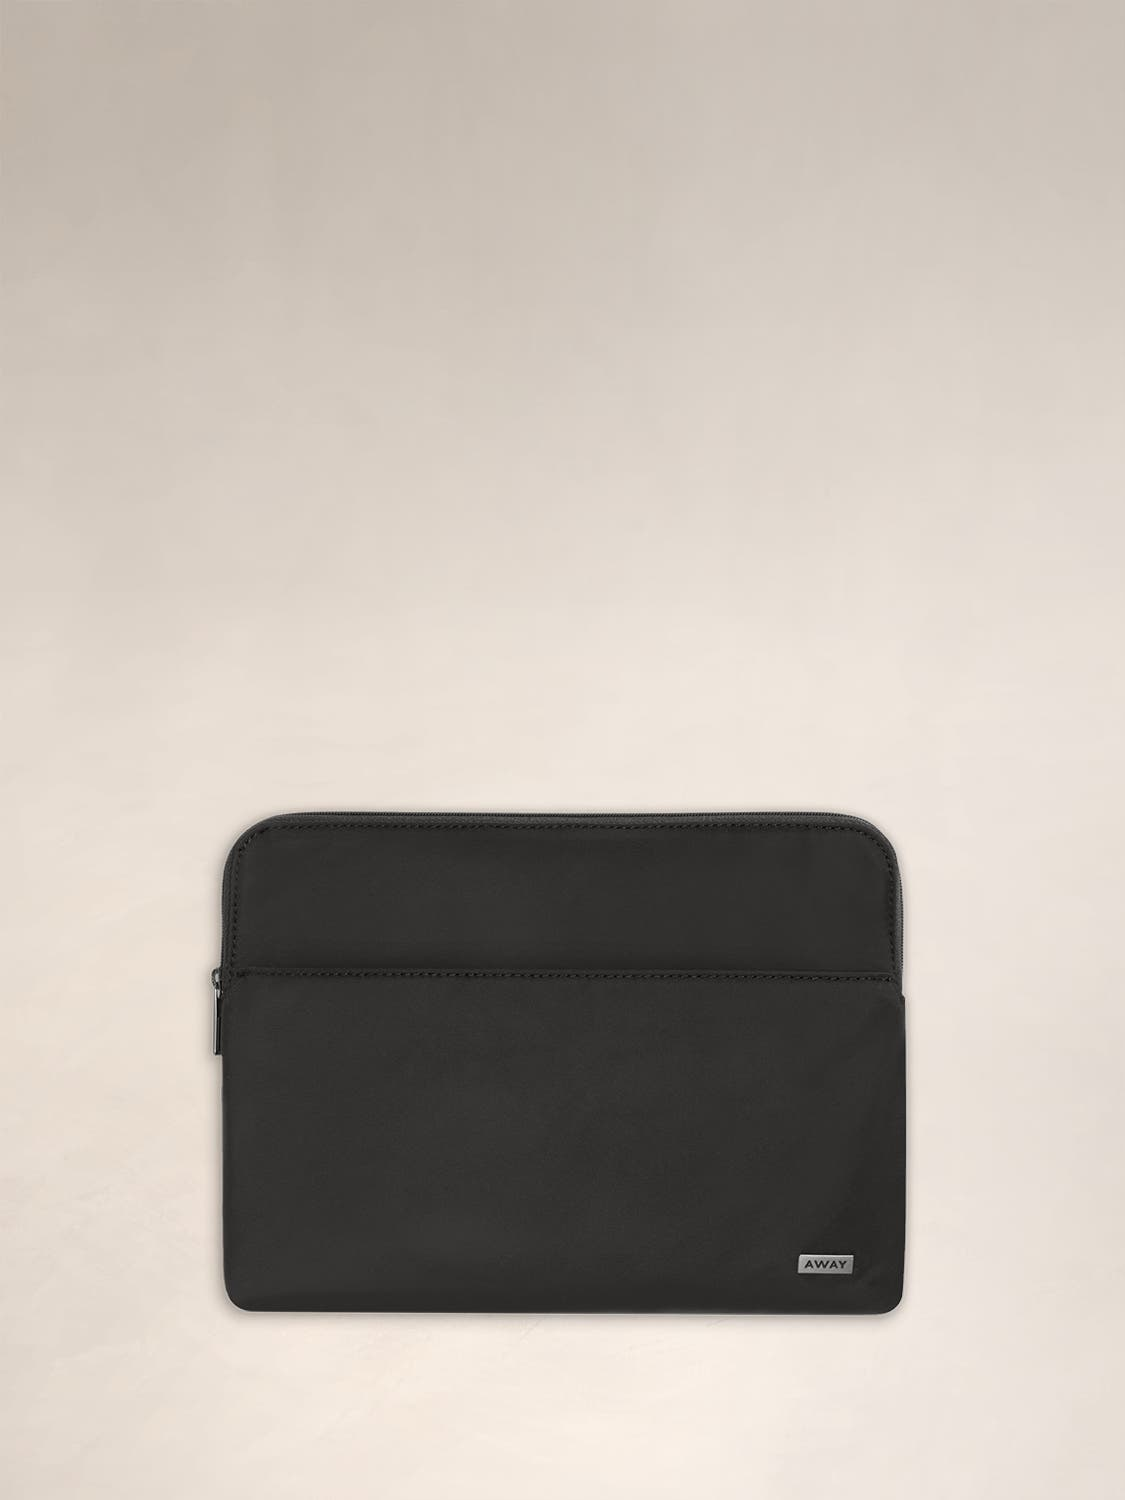 Front view of the Away Tablet Case in Black, featuring a front pocket for easy access to your items